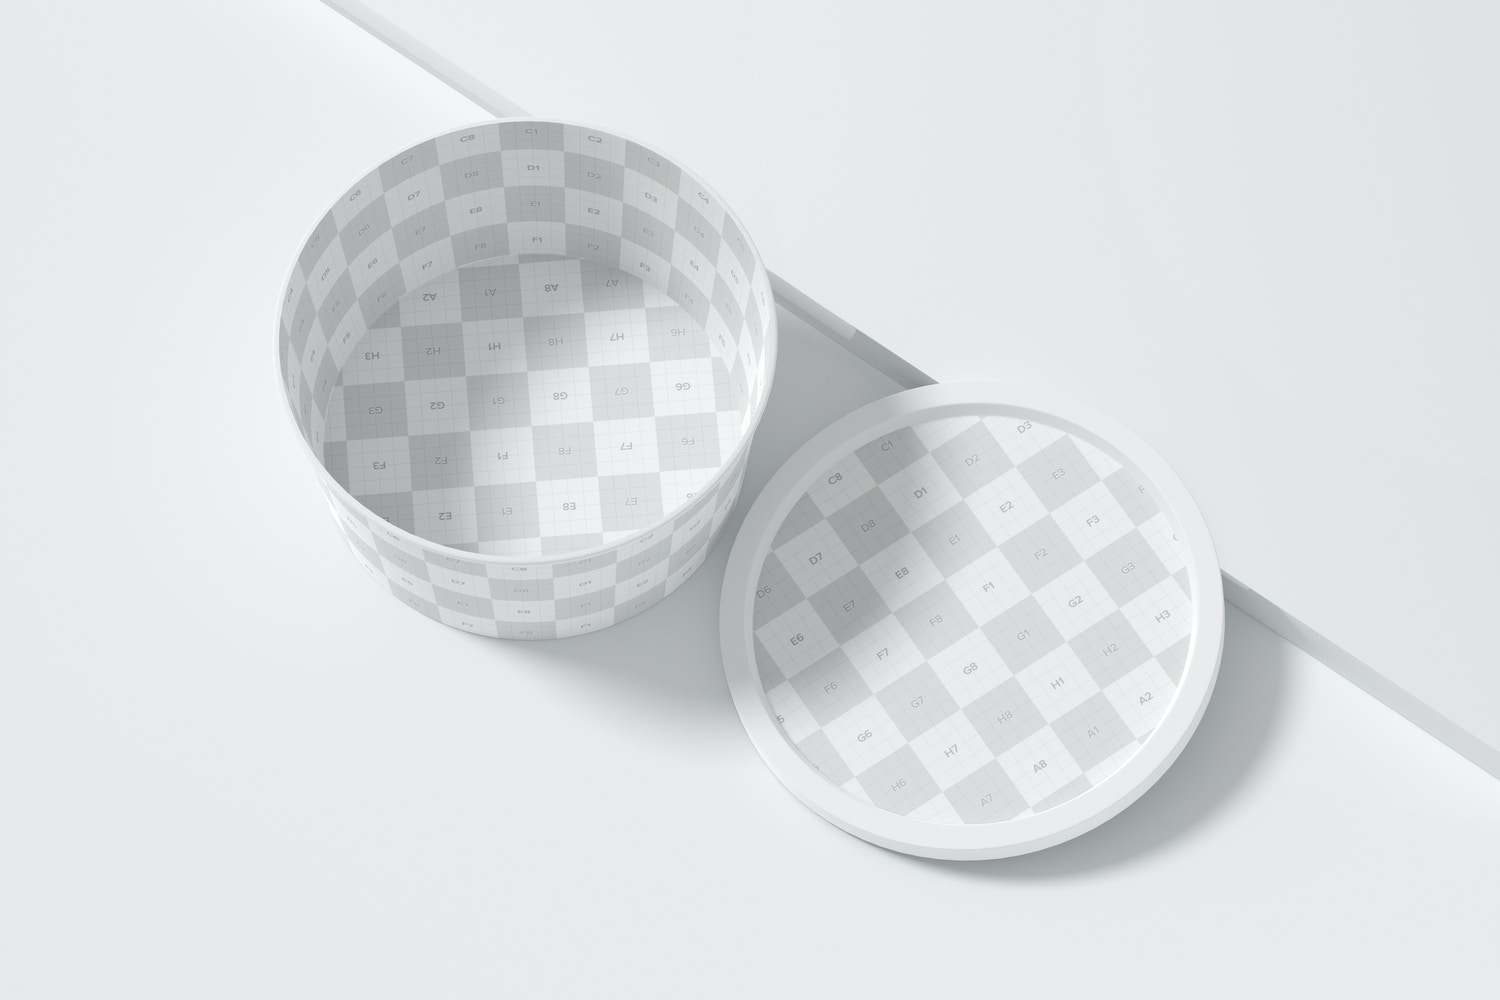 Round Plastic Food Delivery Container Mockup, Top View